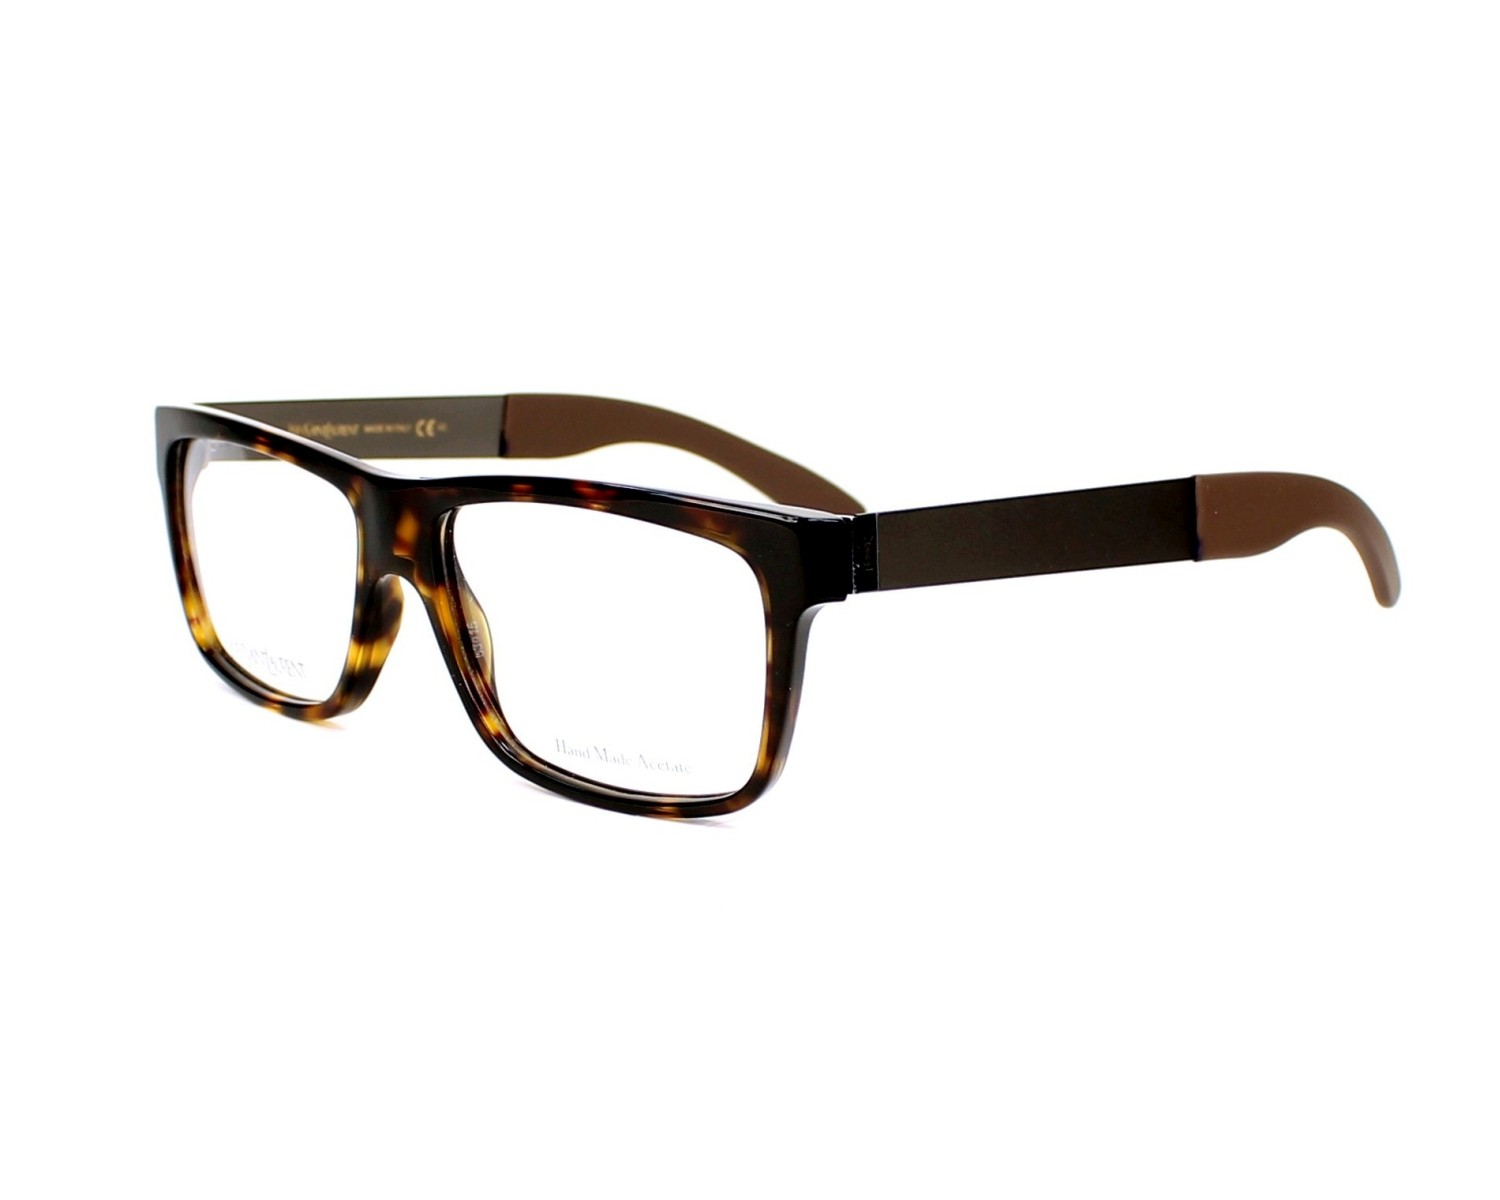 Order your Yves Saint Laurent eyeglasses YSL 2348 RGT 53 today